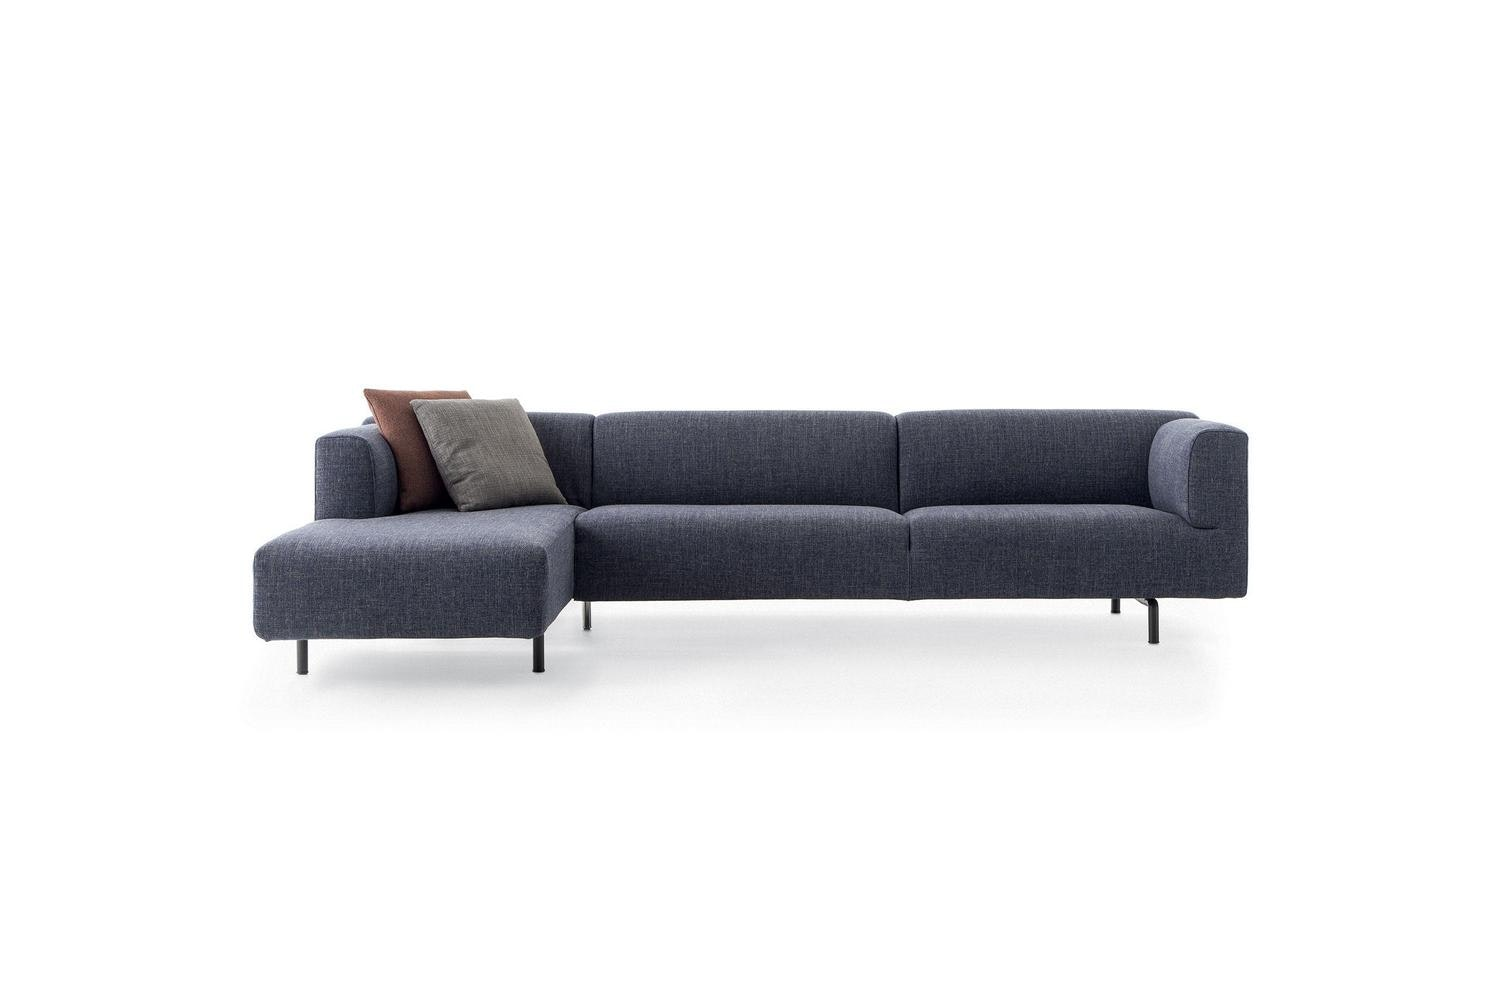 250 Met Sofa by Piero Lissoni for Cassina